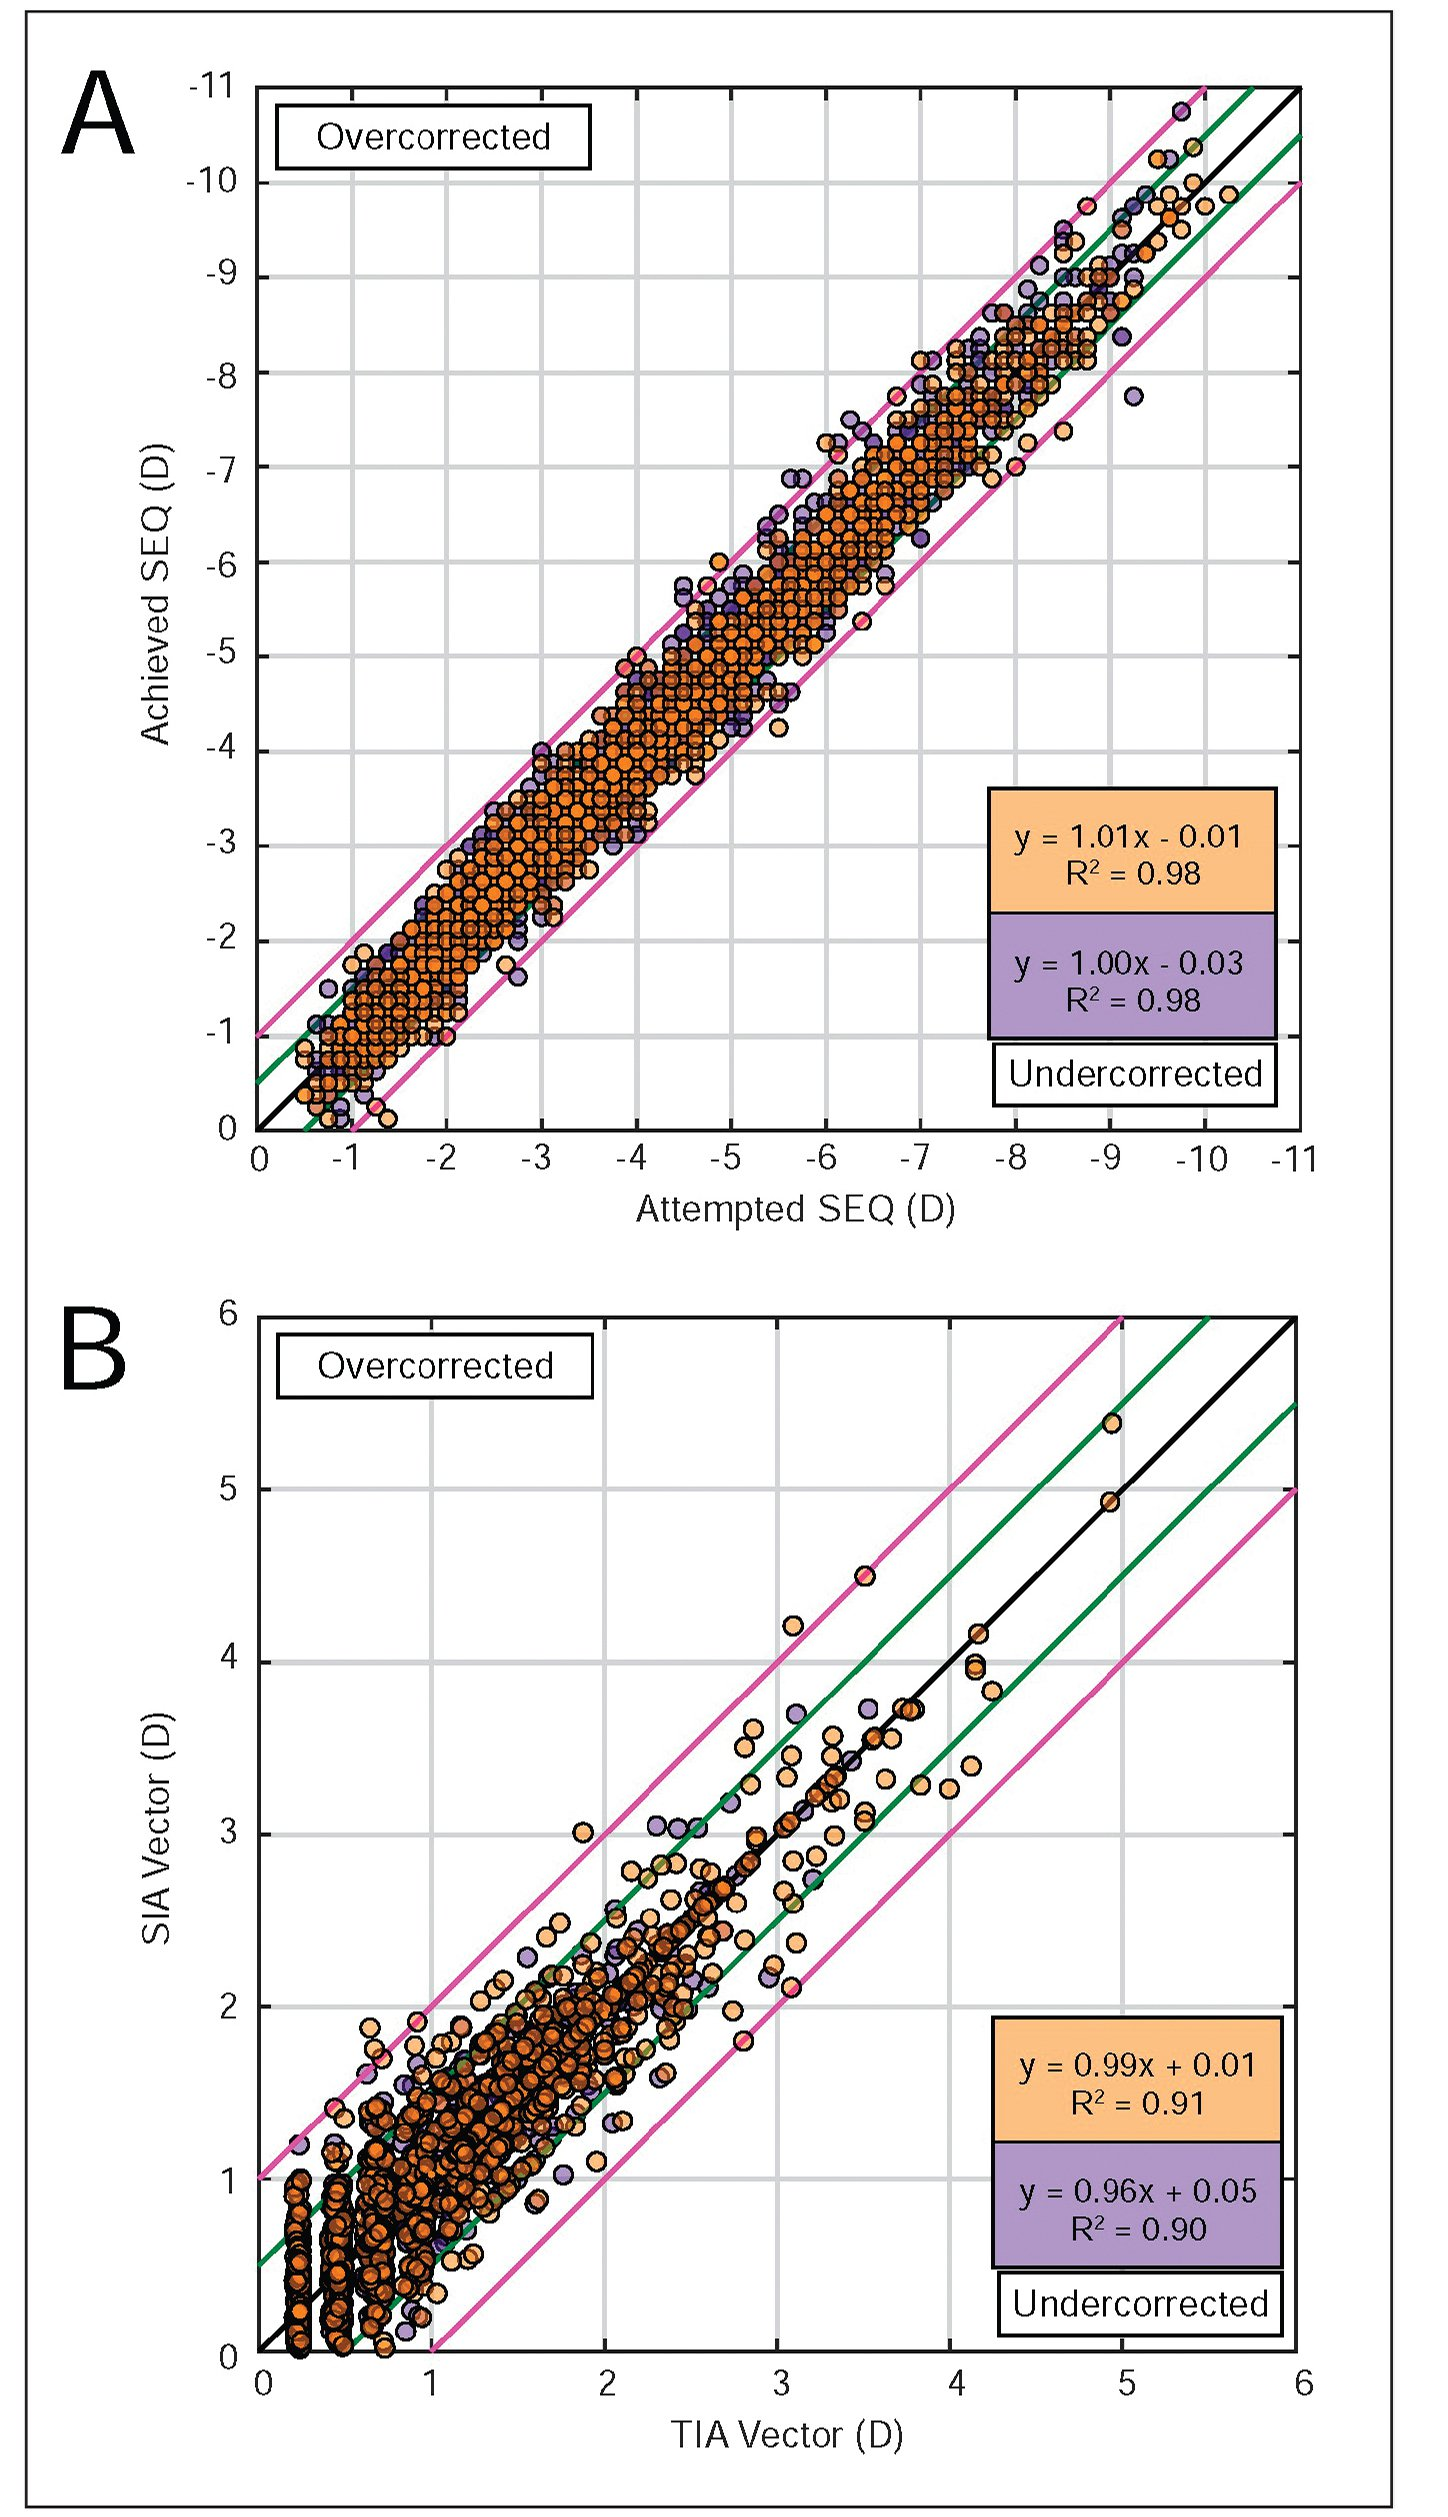 (A) Attempted spherical equivalent (SEQ) before surgery vs achieved SEQ after surgery in the shallow and deep higher-order aberration ablation depth (HOA-AD) groups (orange and purple data-points, respectively). Black lines indicate attempted = achieved, green lines indicate ±0.50 diopters (D), and pink lines indicate ±1.00 D. (B) Preoperative target induced astigmatism (TIA) vector versus postoperative surgically induced astigmatism (SIA) vector in shallow and deep HOA-AD eyes (orange and purple data-points, respectively). Black lines indicate TIA = SIA, green lines indicate ±0.50 D, pink lines indicate ±1.00 D.